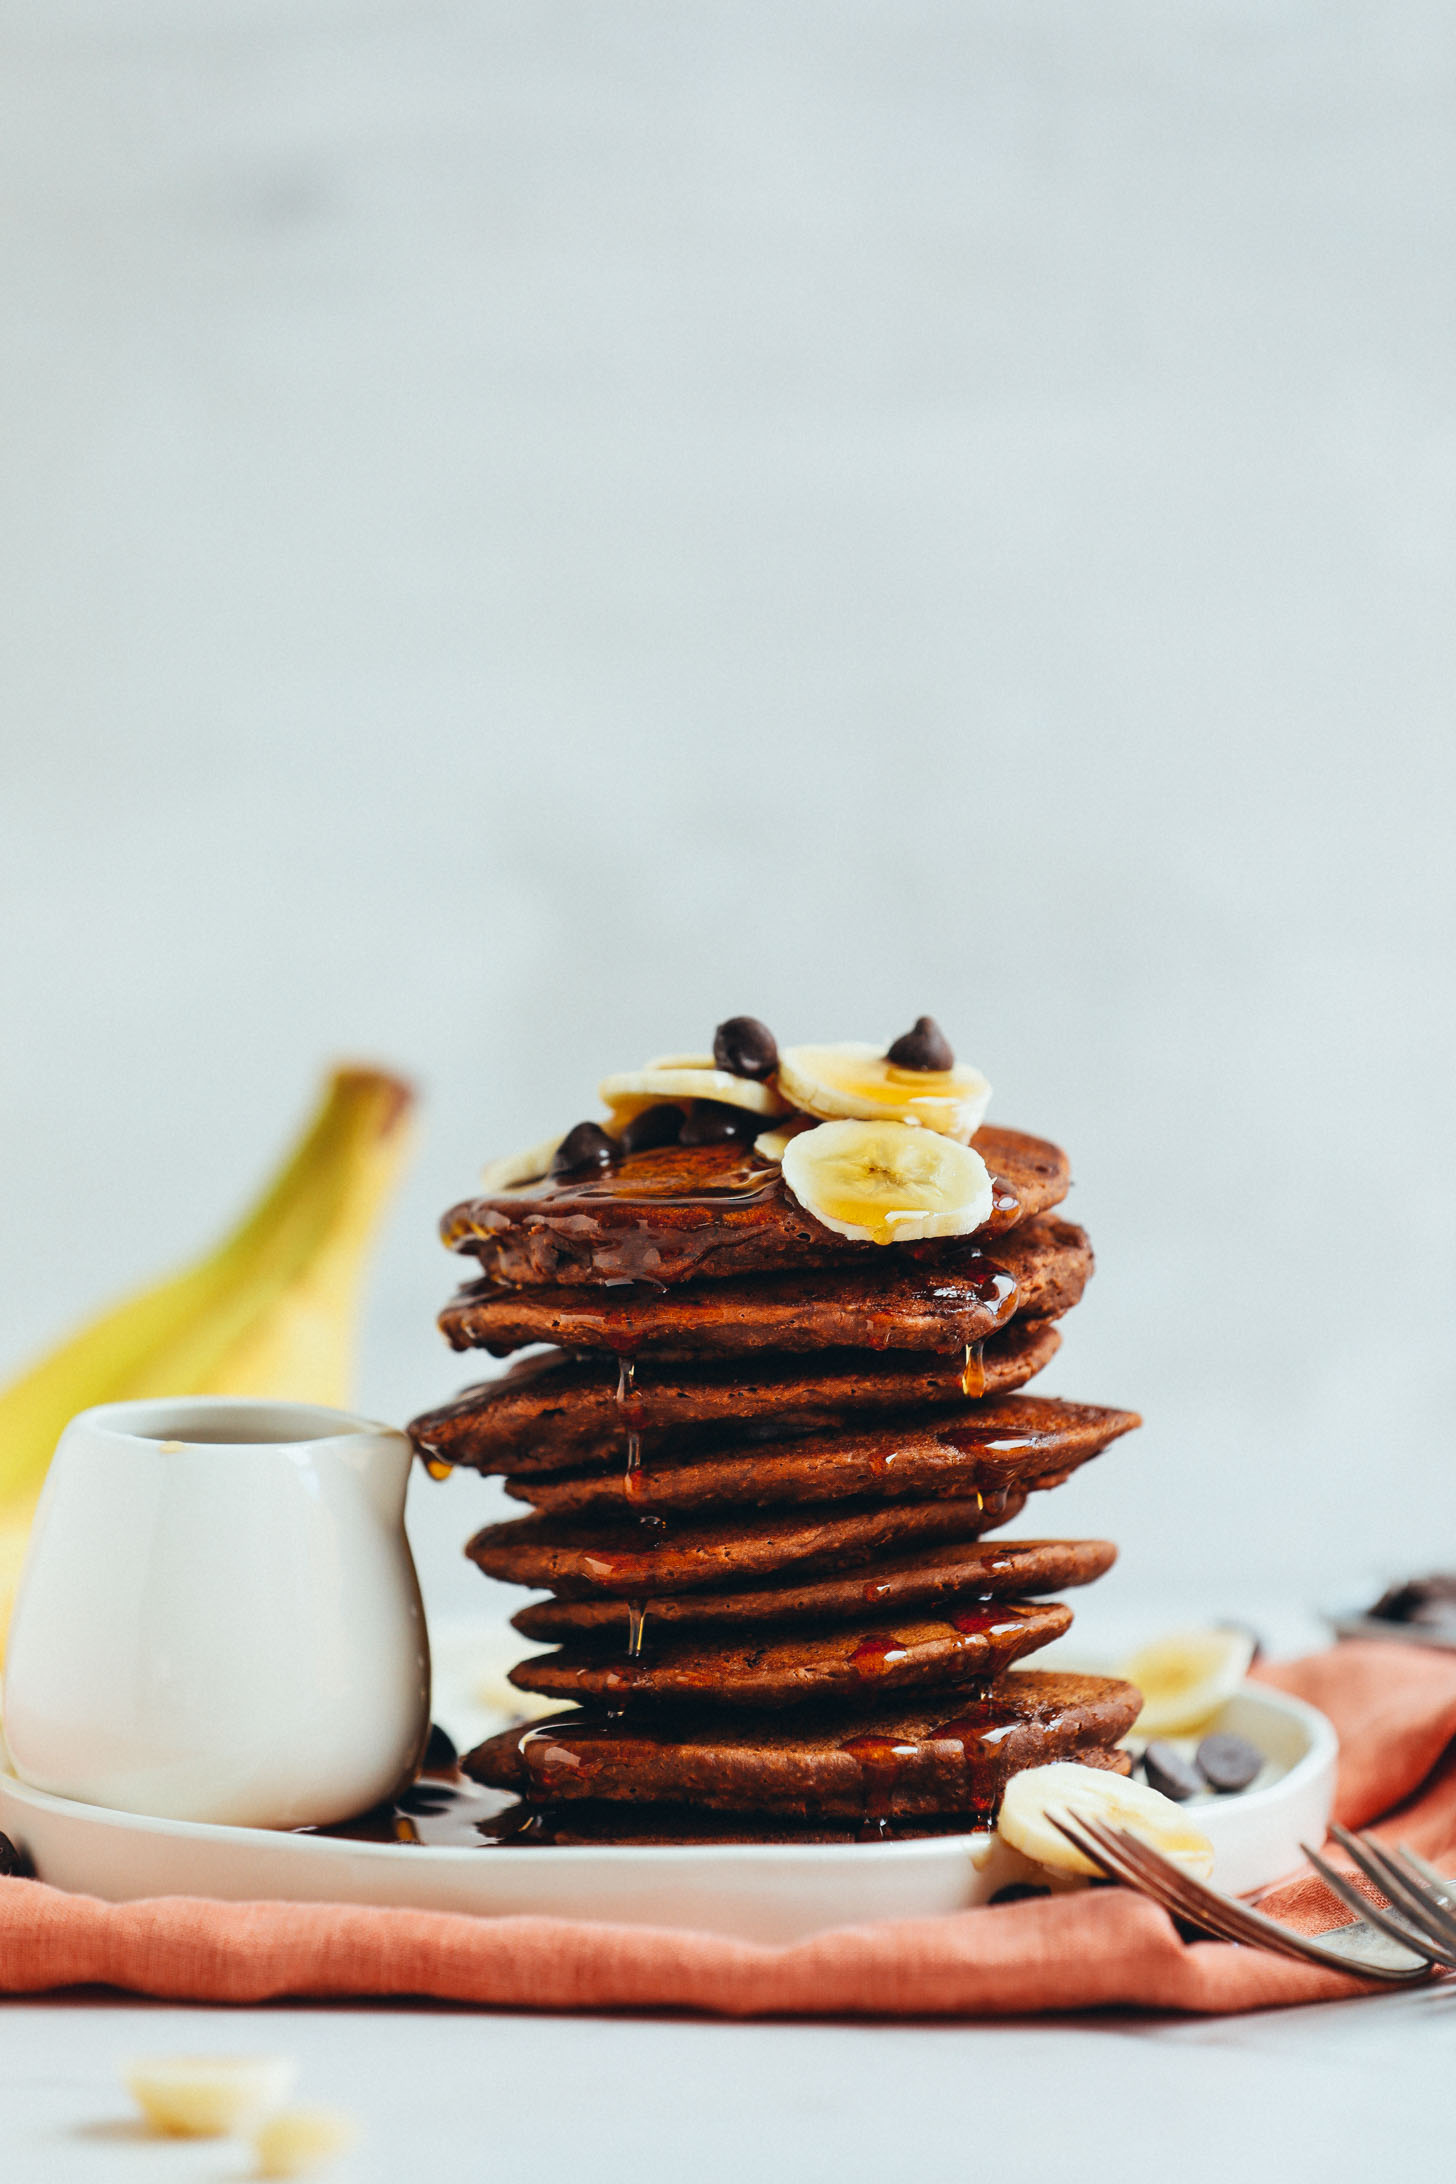 A stack of fluffy Vegan Chocolate Chocolate Chip Pancakes drizzled with syrup